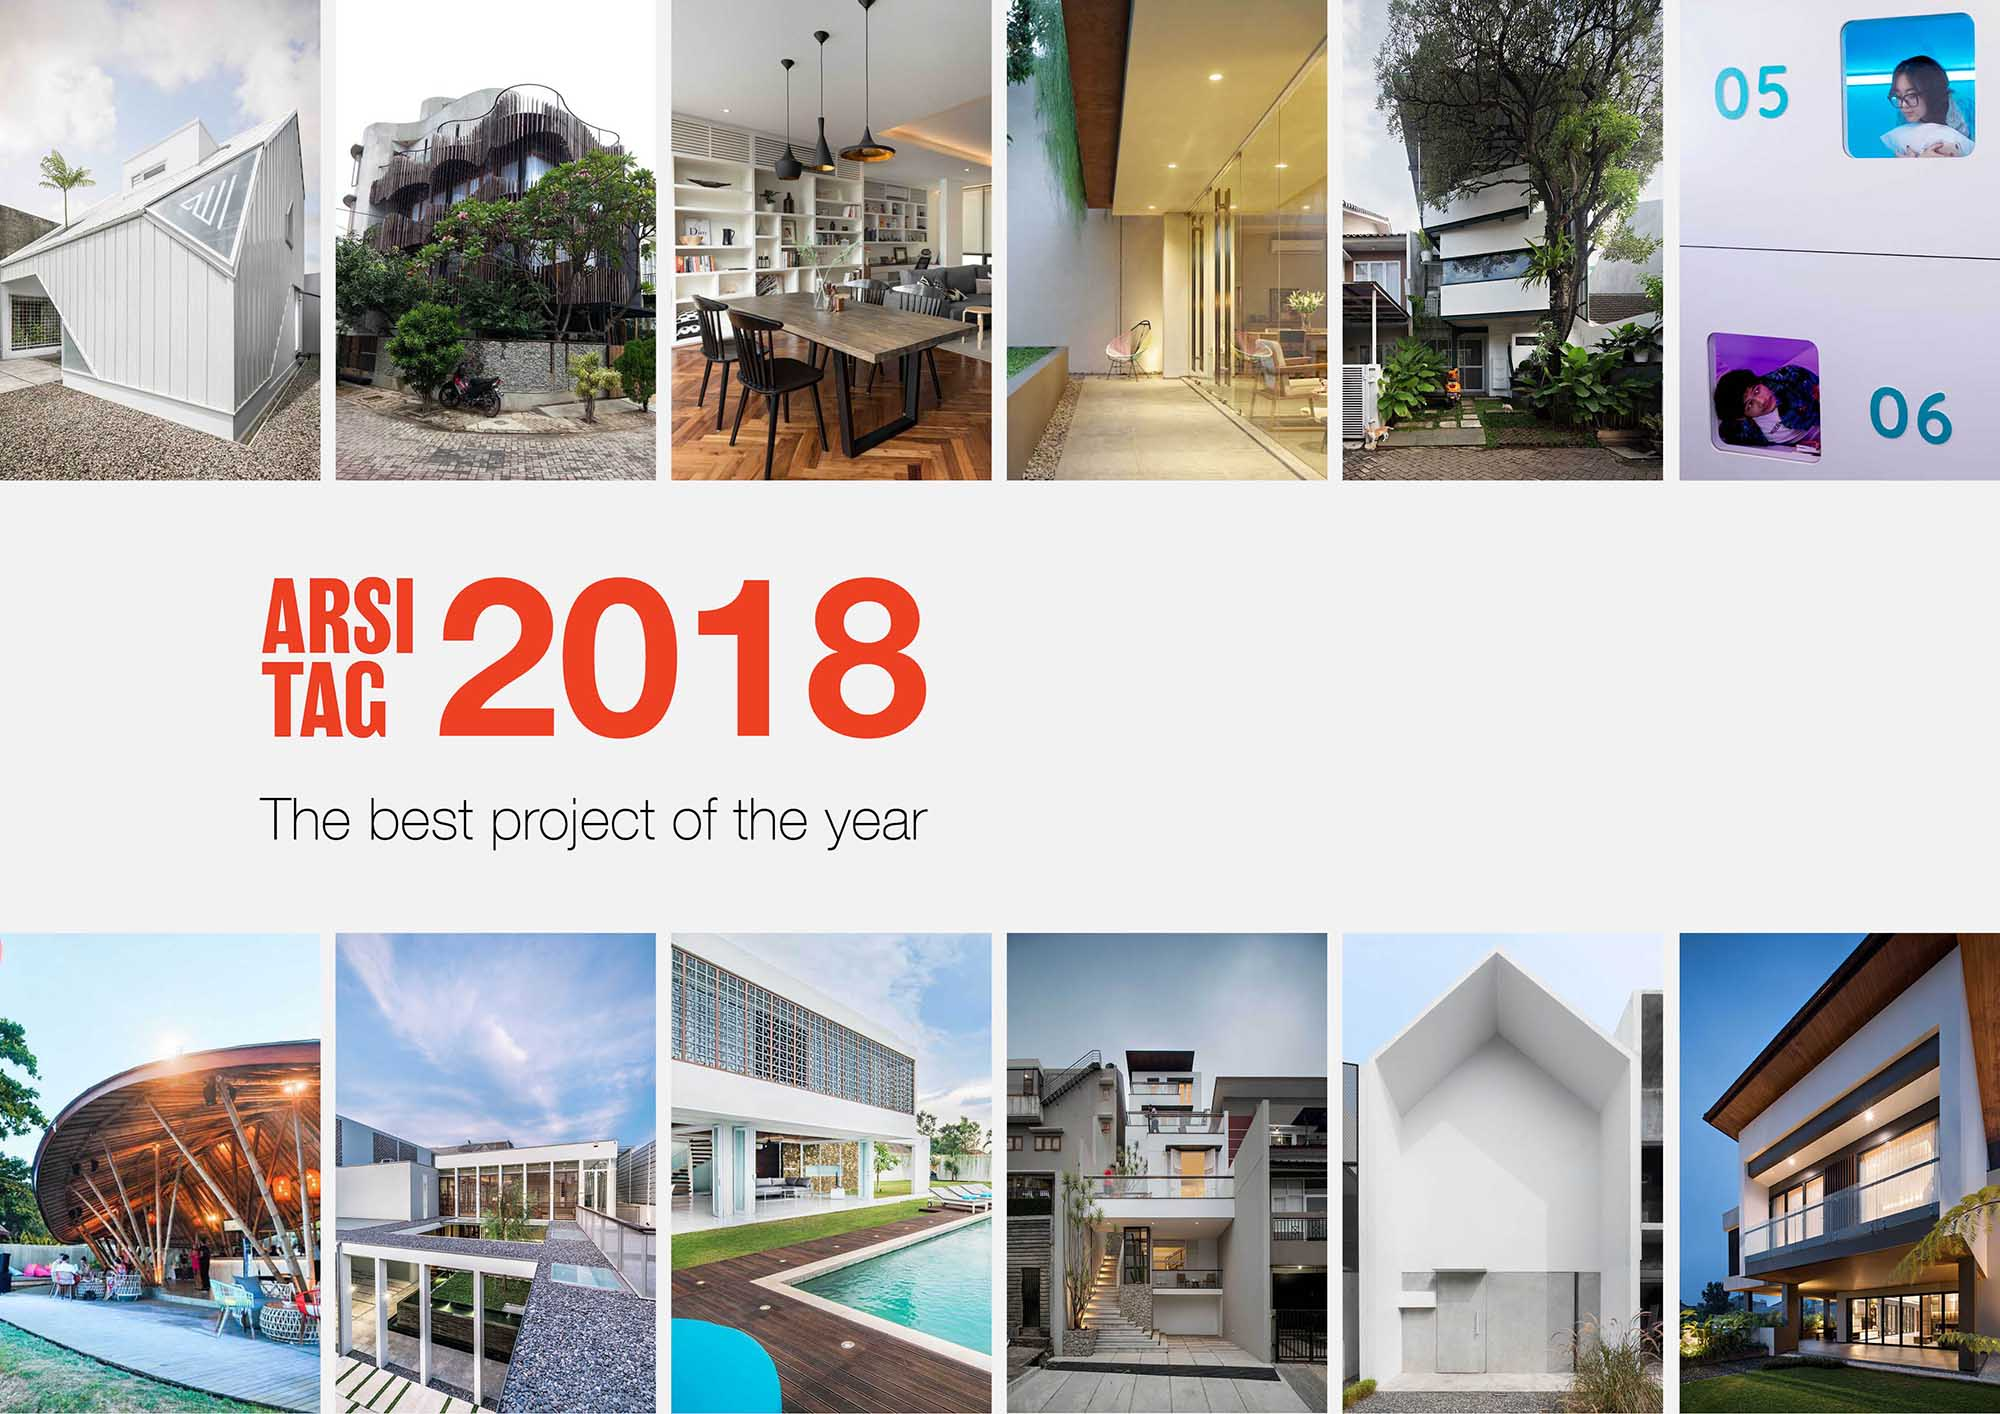 Arsitag 2018: The Best Project of the Year | Foto artikel Arsitag